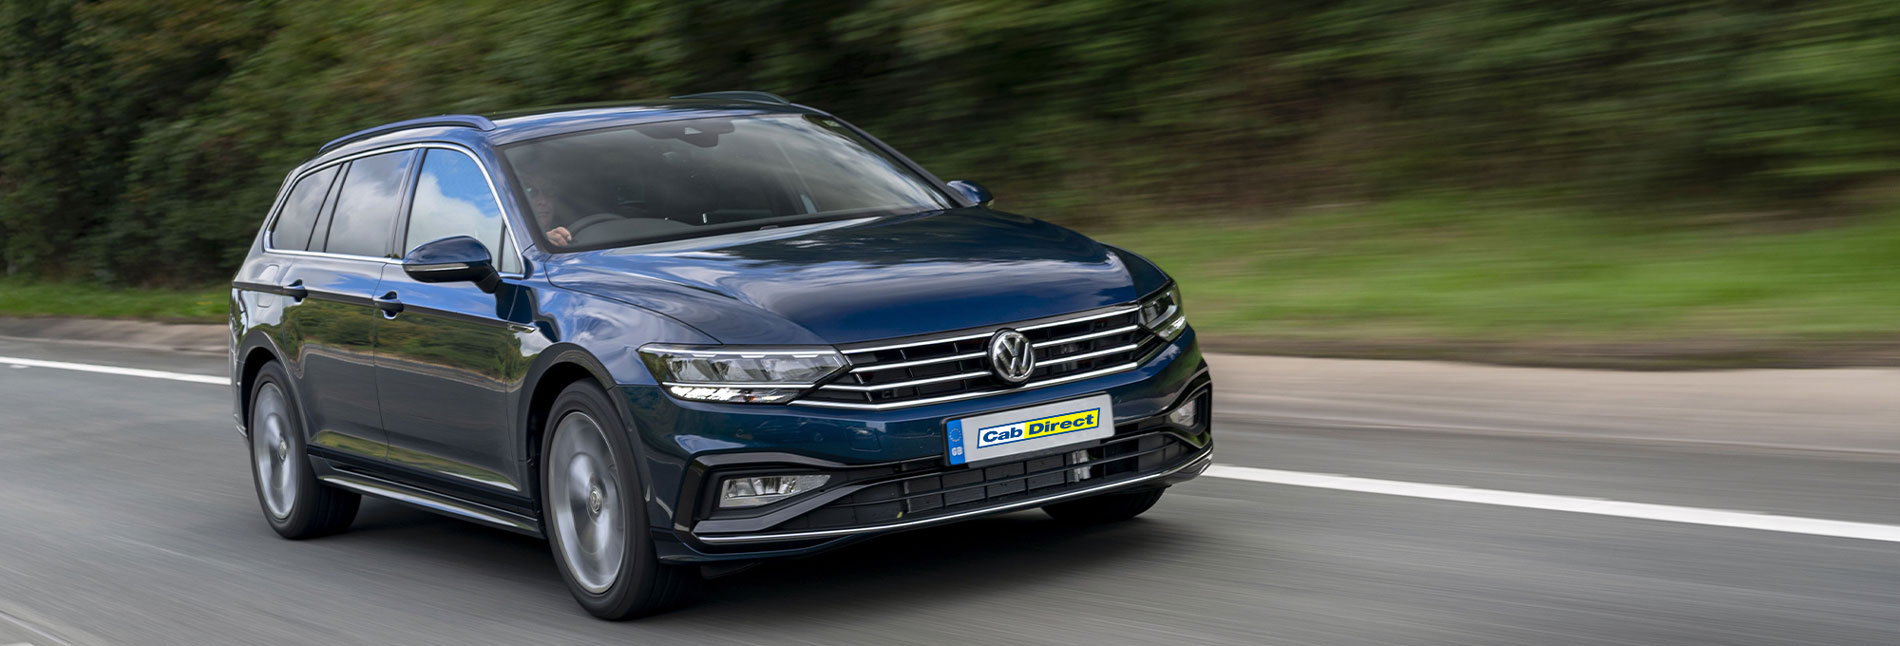 Volkswagen Passat Taxis For Sale Vw Taxis Cab Direct